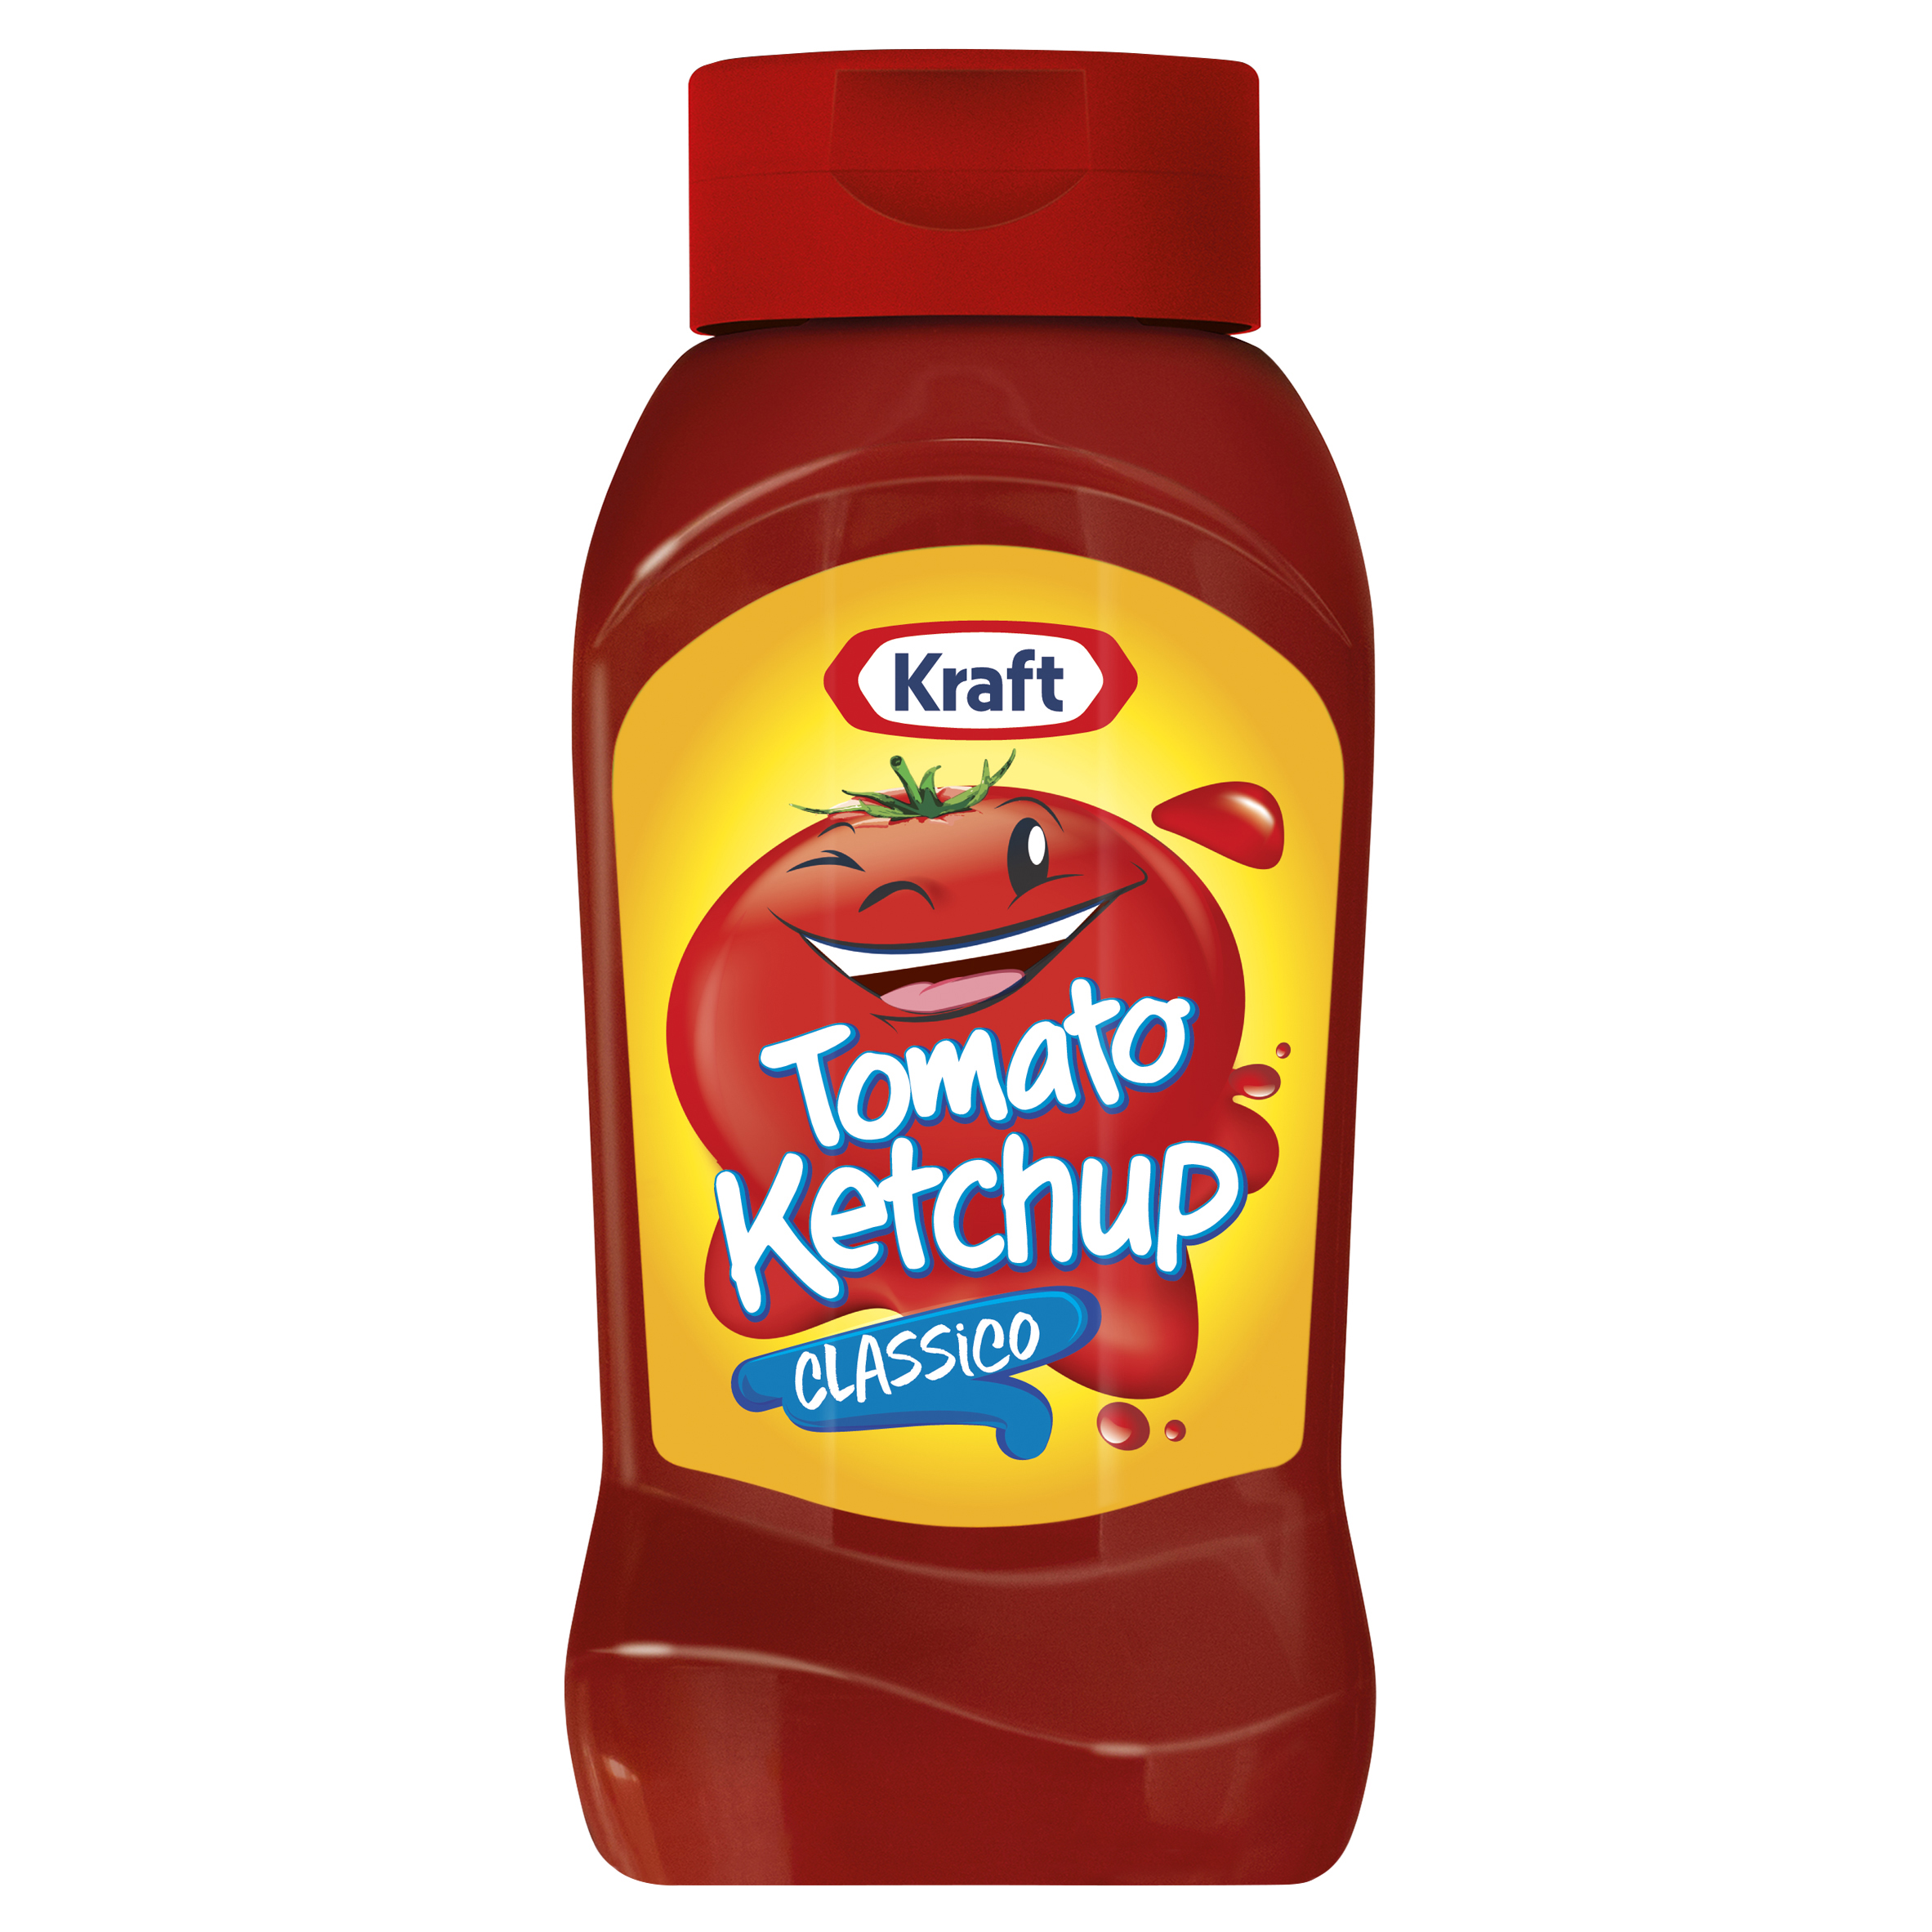 Kraft Tomato Ketchup 410ml Up Right image